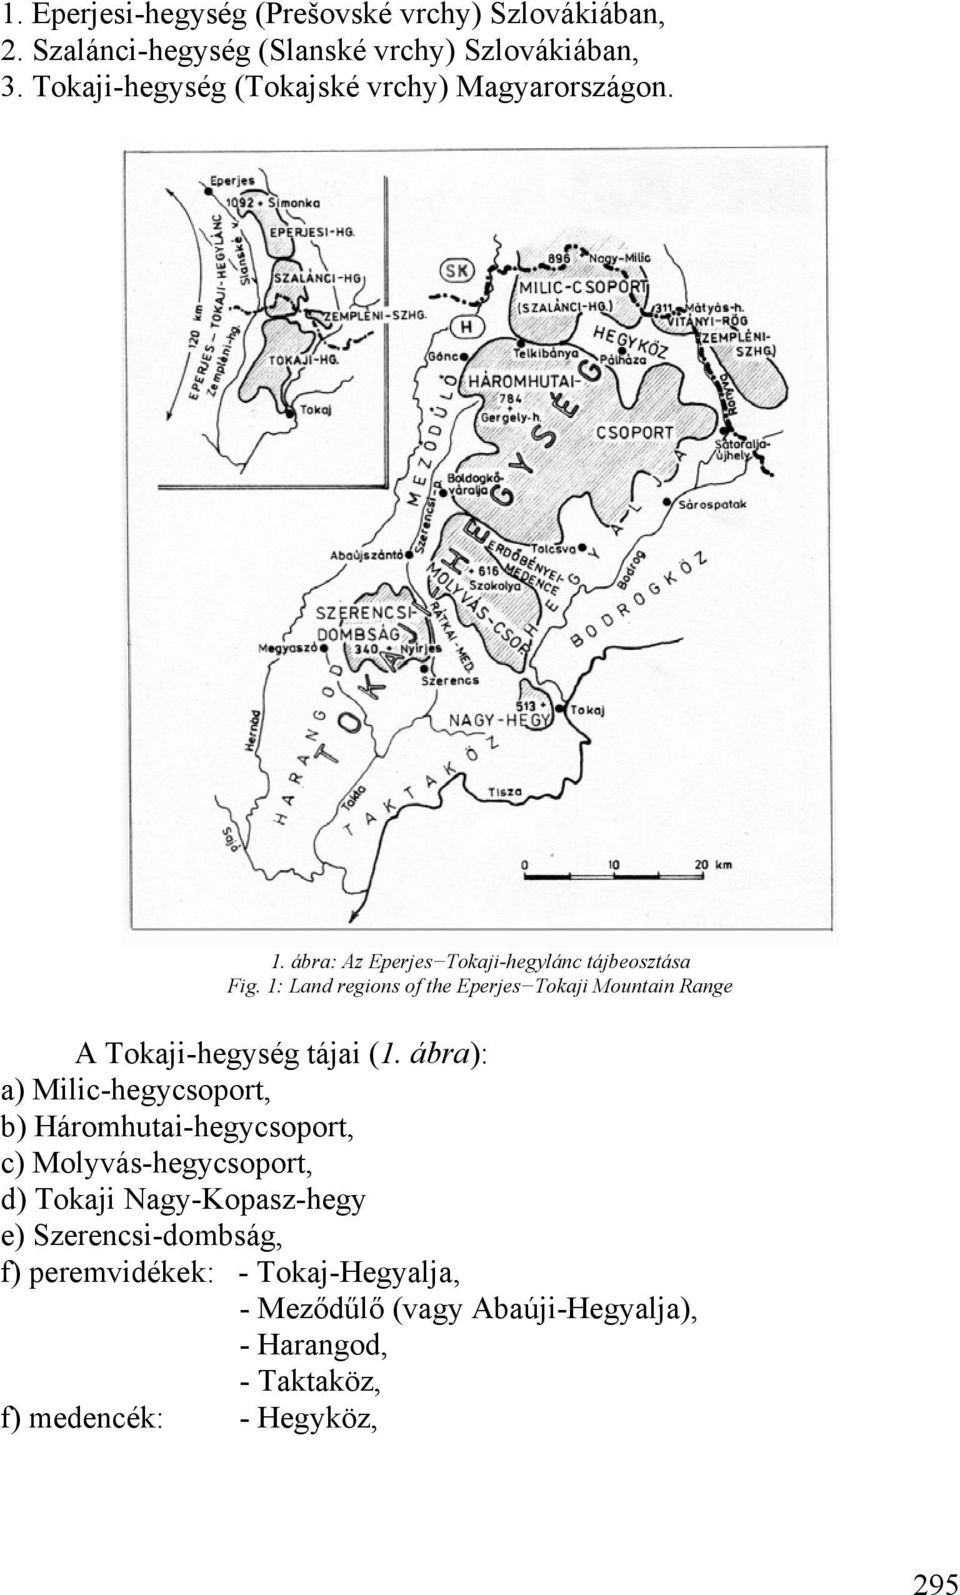 1: Land regions of the Eperjes Tokaji Mountain Range A Tokaji-hegység tájai (1.